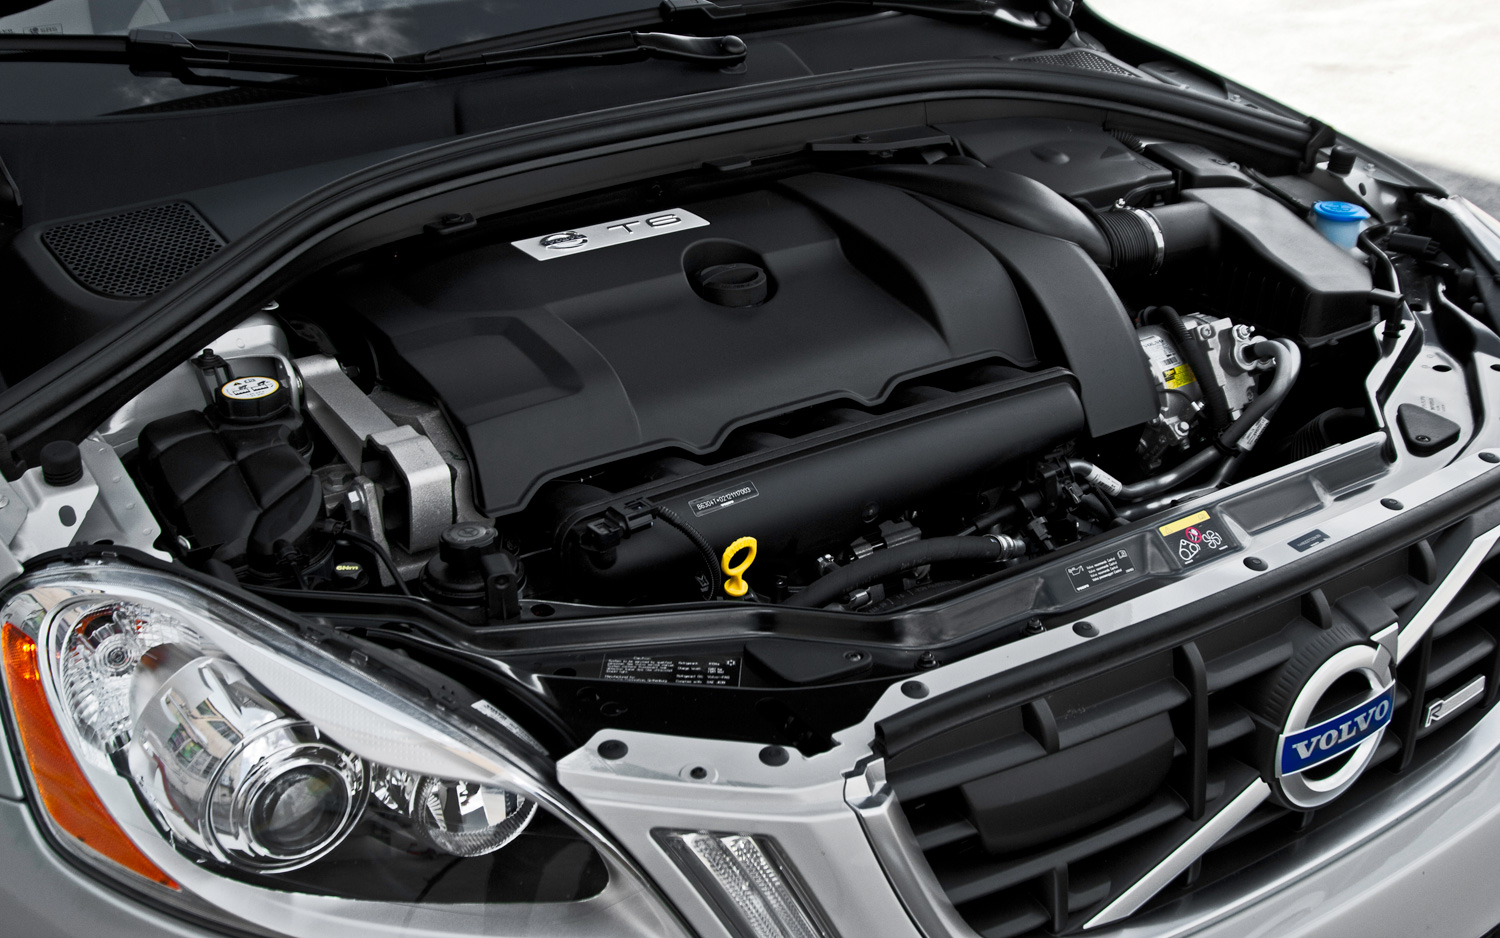 Volvo XC60 engine #3